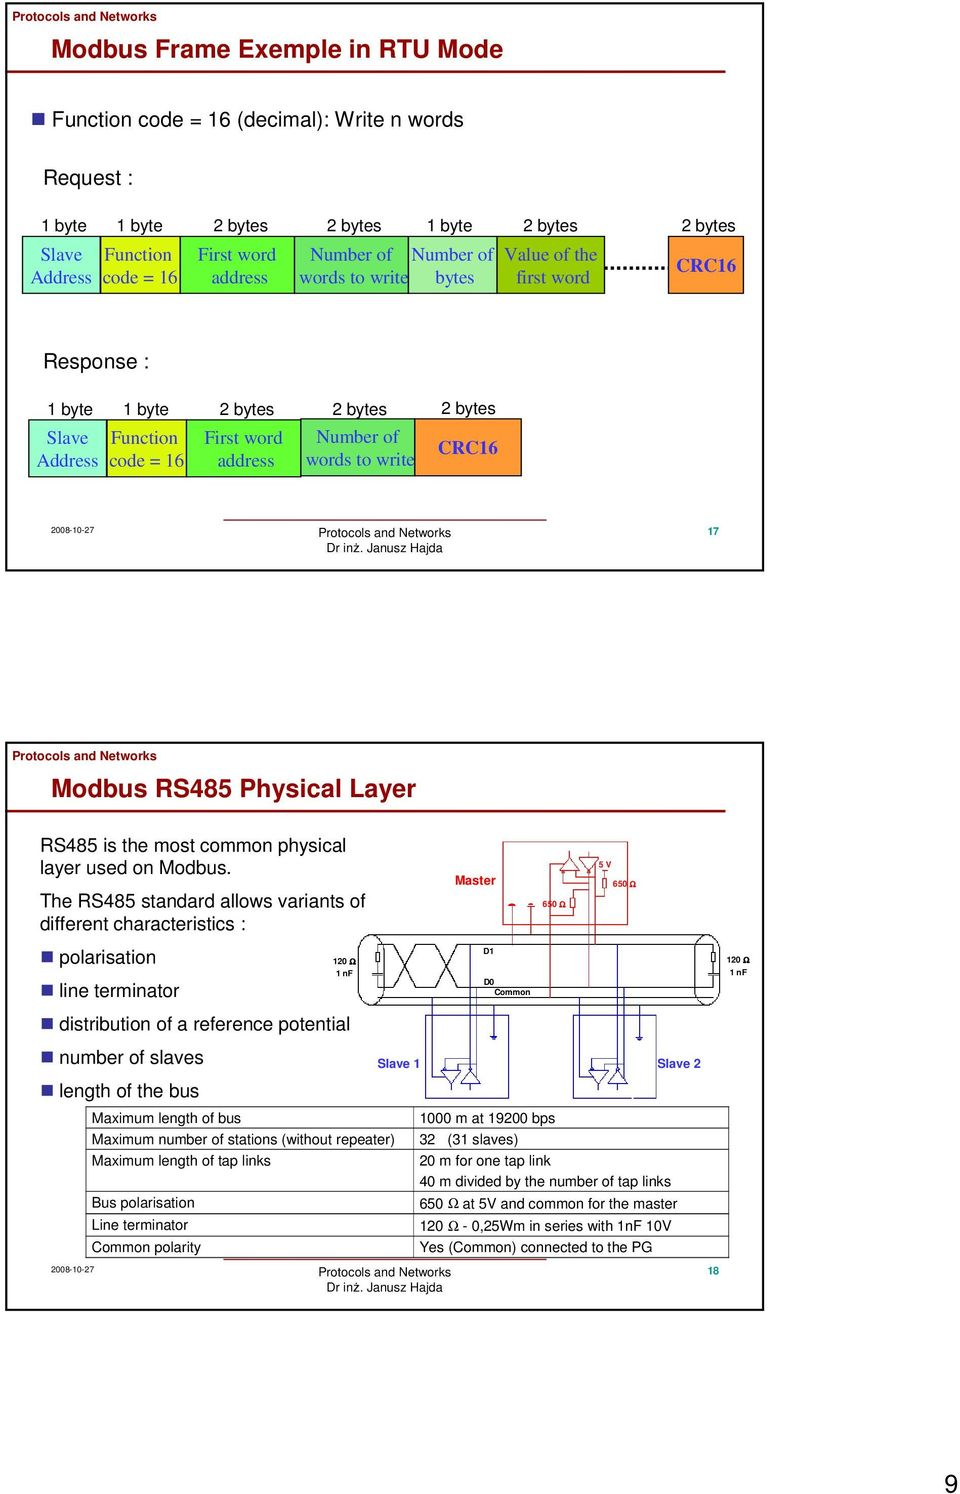 RS485 is the most common physical layer used on Modbus.